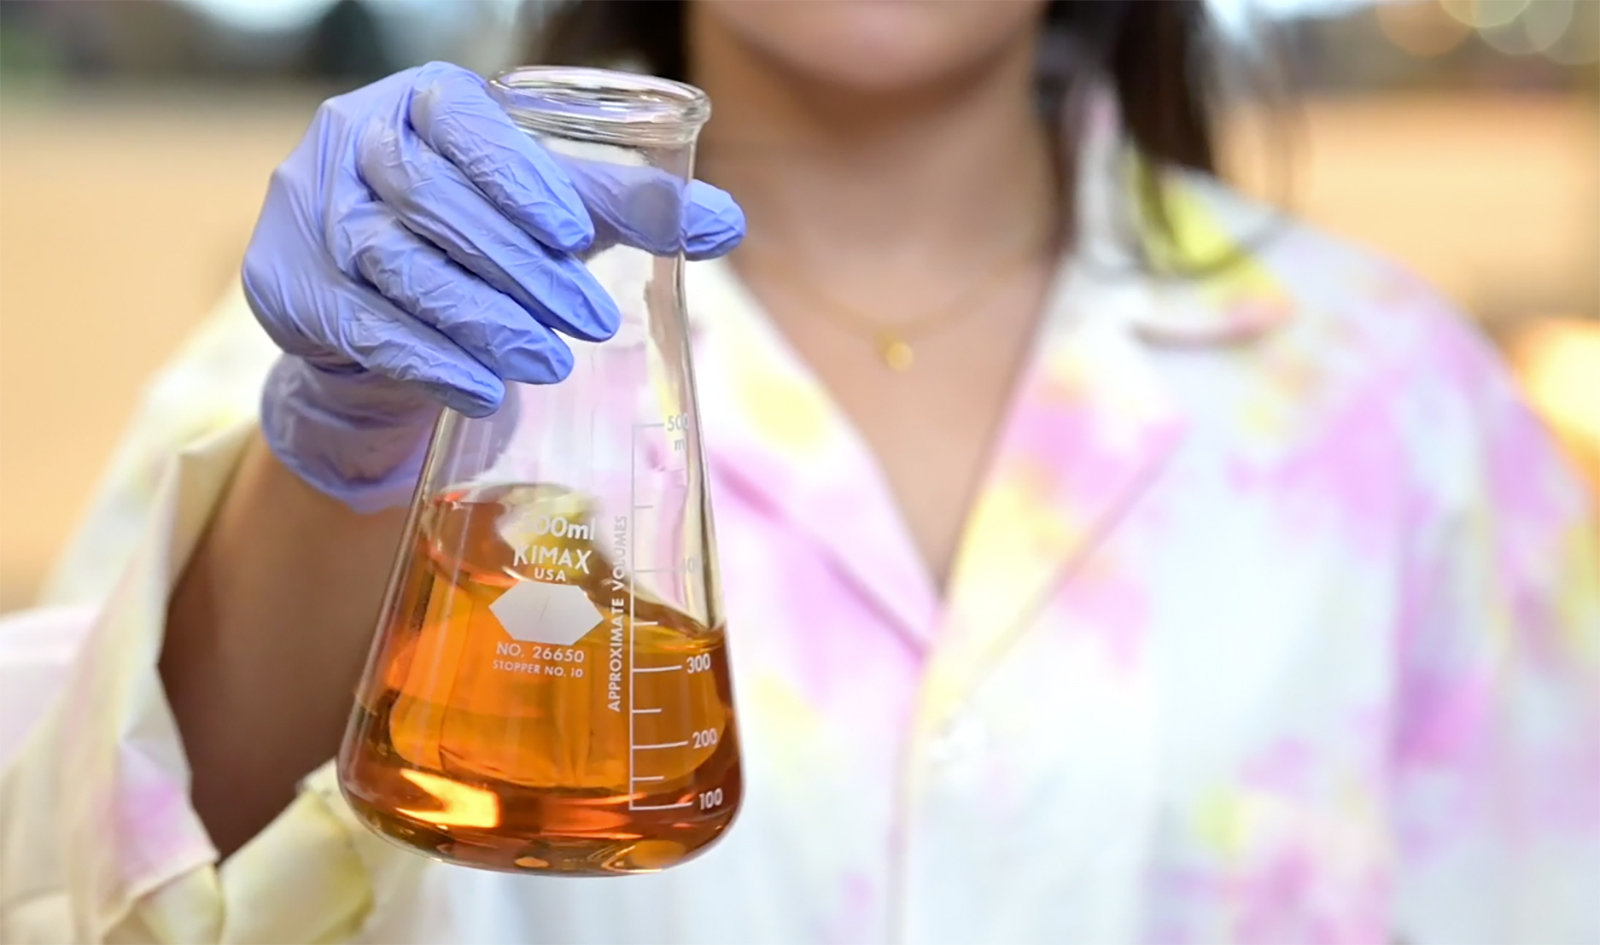 A new use for McDonald's used cooking oil: 3D printing